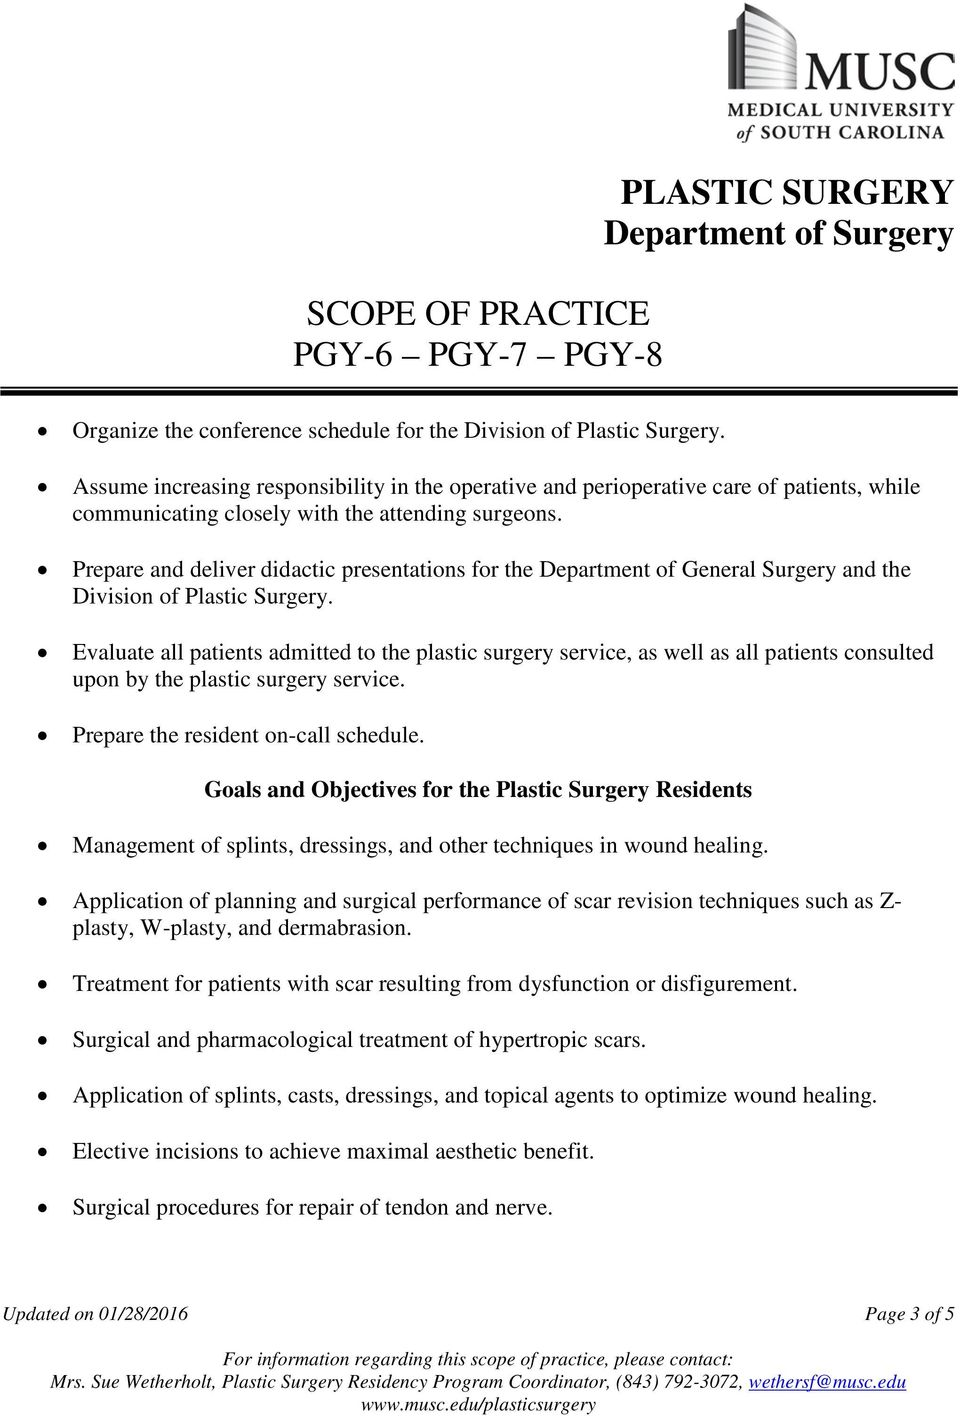 Prepare and deliver didactic presentations for the Department of General Surgery and the Division of Plastic Surgery.